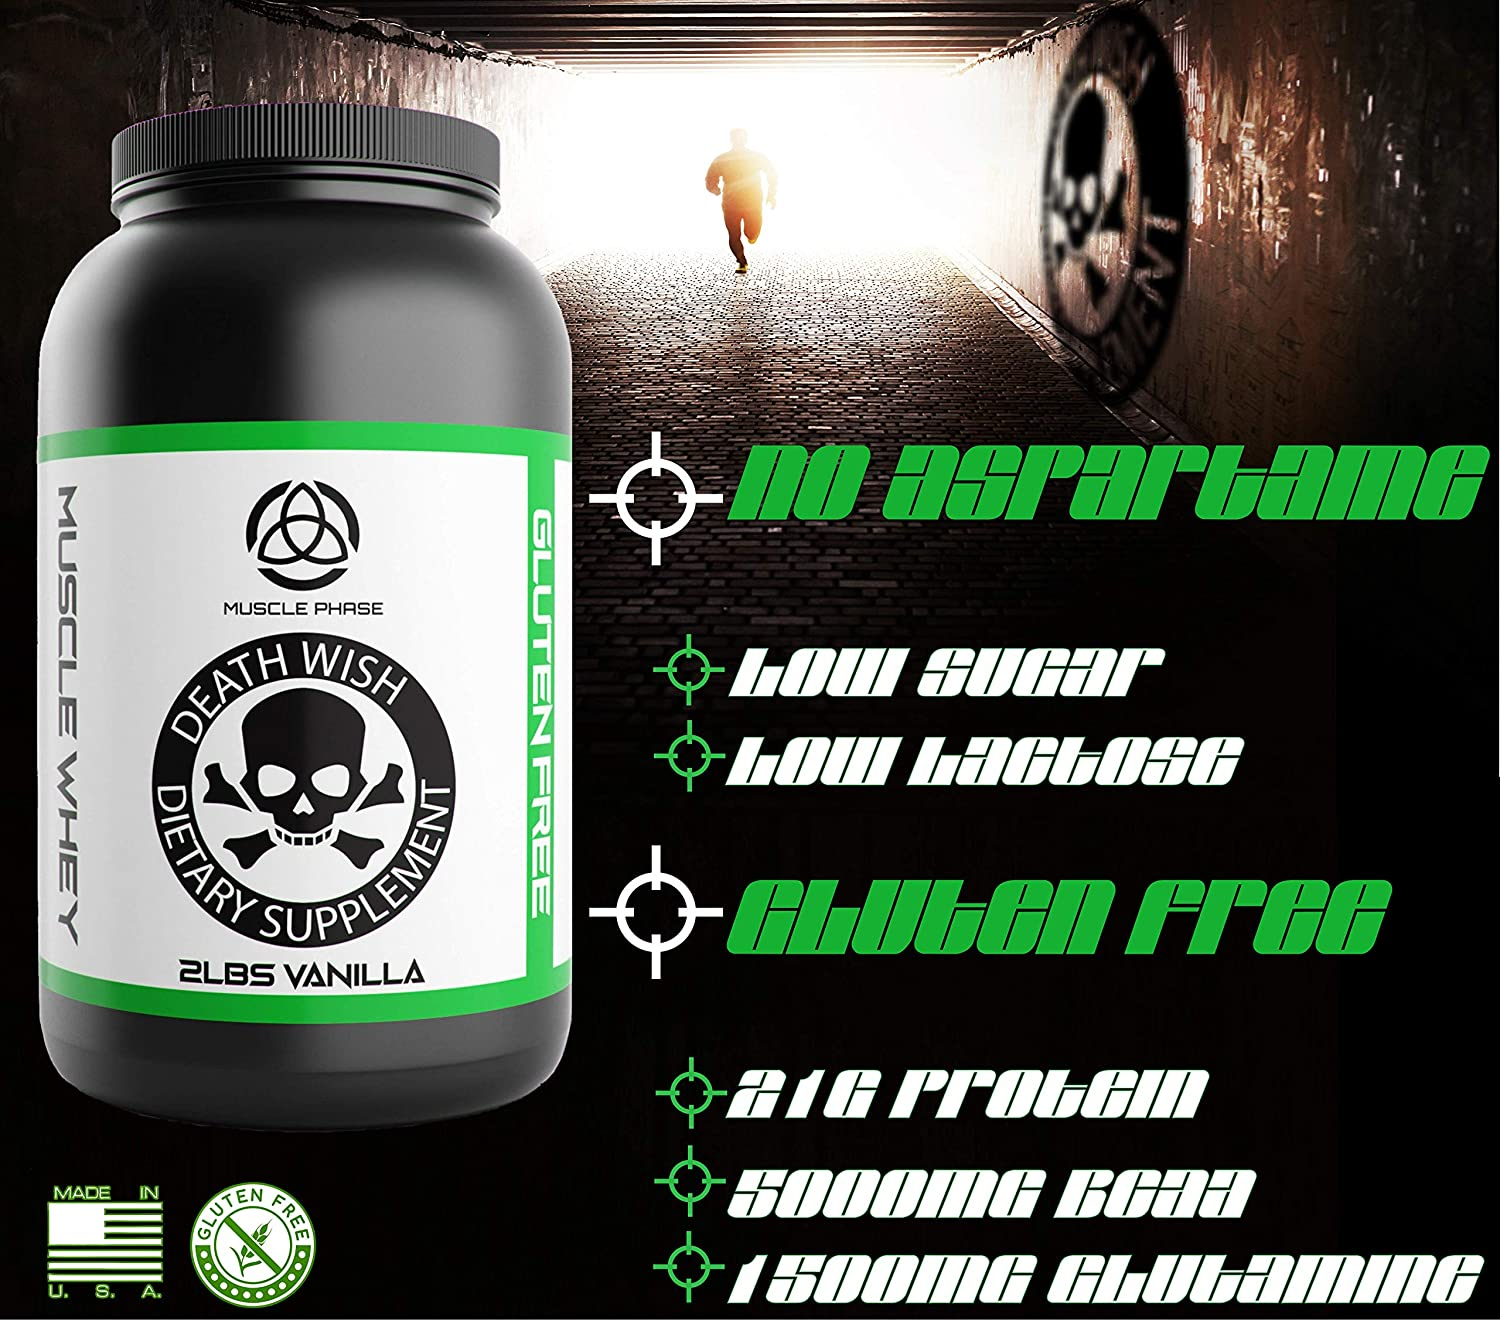 MUSCLE WHEY PROTEIN by Death Wish Supplements Grass Fed Low Fat Low Sugar Protein for Men Women Meal Replacement for Weight Loss Lean Protein 21g Vanilla Chocolate Flavor Chocolate